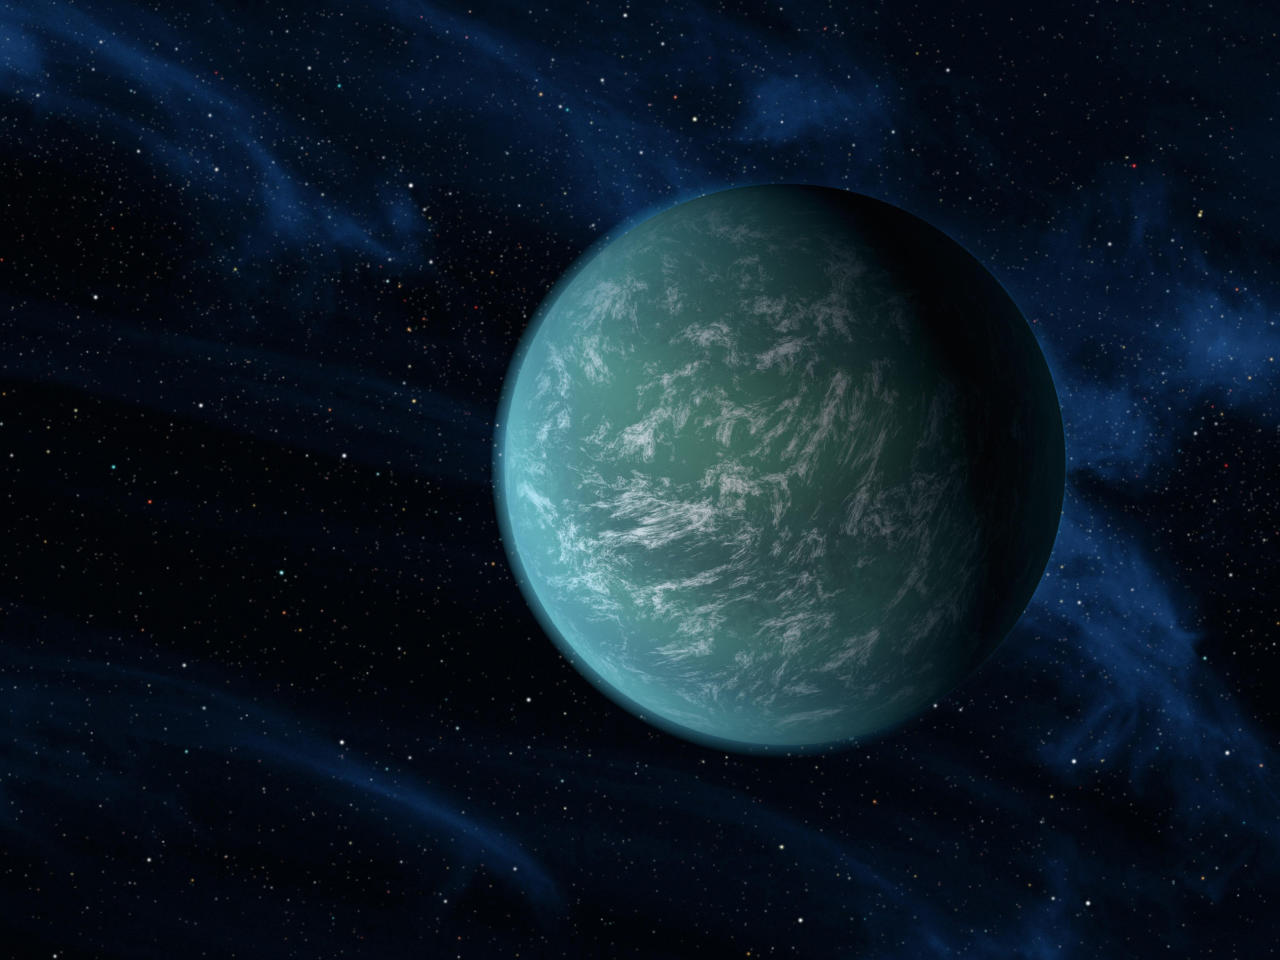 An artist's illustration of Kepler-22b, a planet known to comfortably circle in the habitable zone of a sun-like star, is seen in this undated handout picture released by NASA, December 5, 2011. Kepler-22b, the most Earth-like planet ever discovered is circling a star 600 light years away, a key finding in an ongoing quest to learn if life exists beyond Earth, scientists said on Monday. Kepler-22b joins a list of more than 500 planets found to orbit stars beyond our solar system. It is the smallest and the best positioned to have liquid water on its surface - among the ingredients necessary for life on Earth. REUTERS/NASA/Ames/JPL-Caltech/Handout